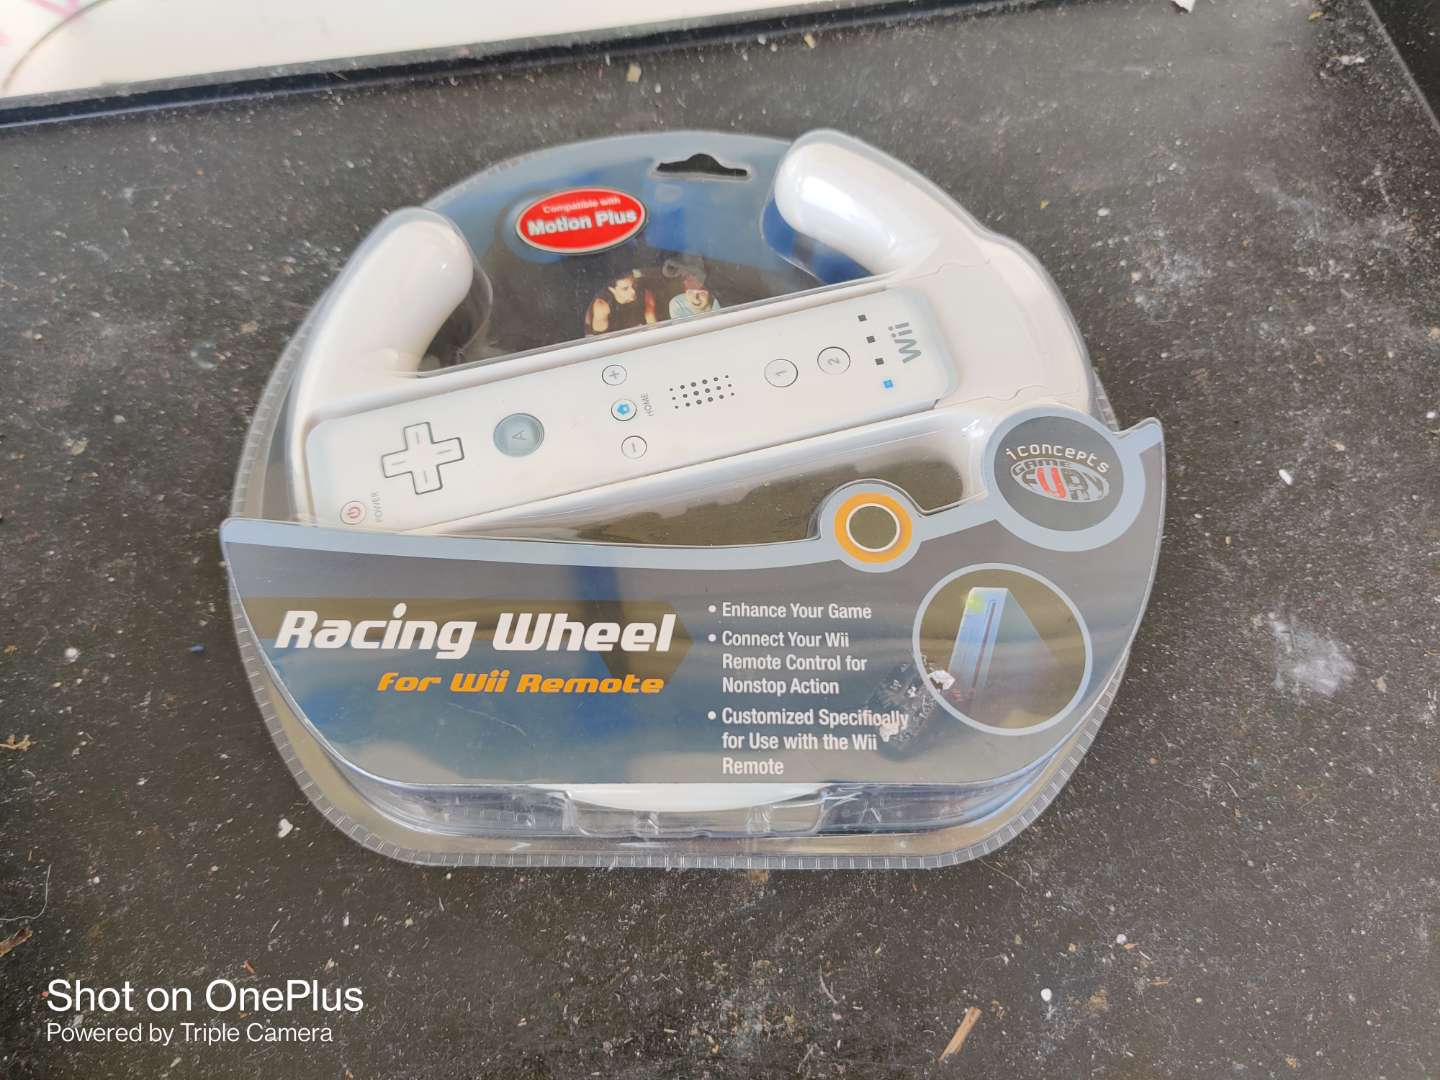 502 racing wheel for the Wii remote